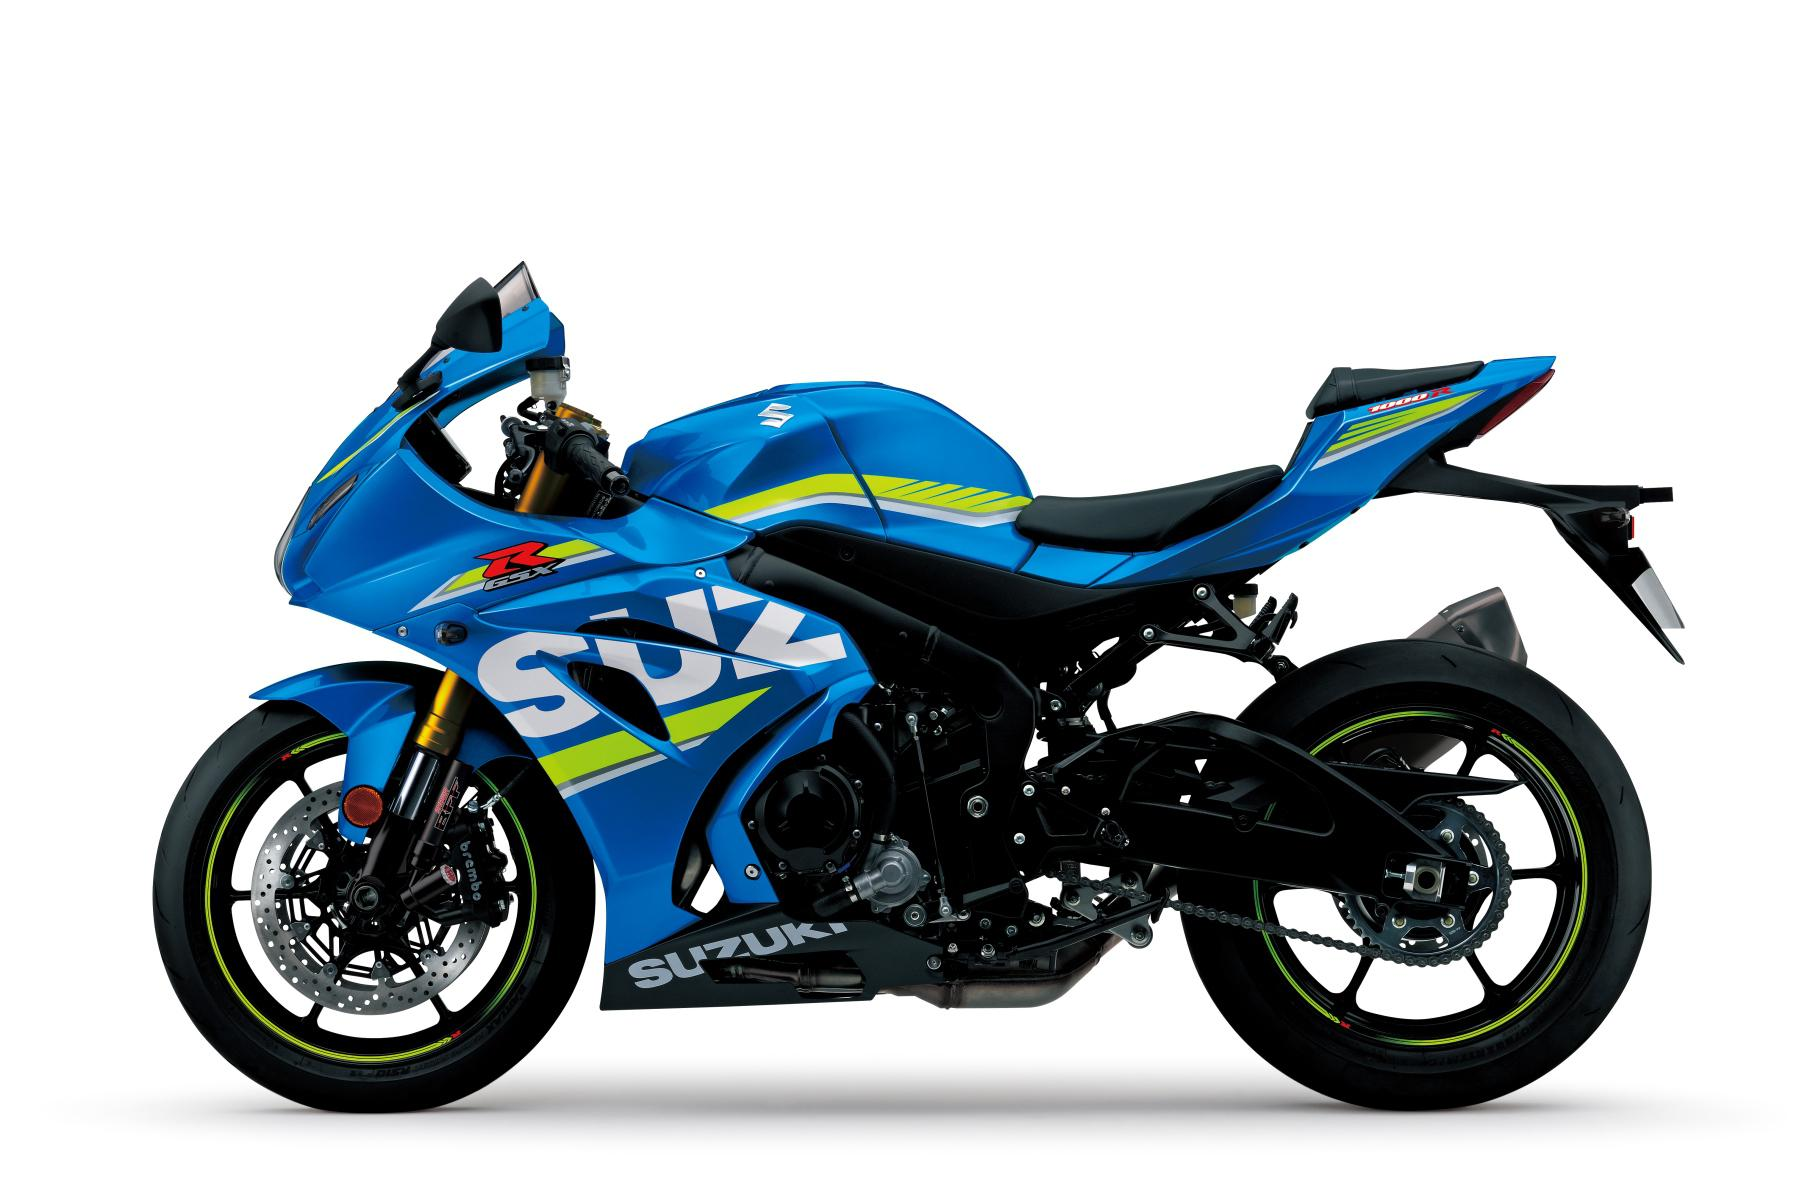 suzuki gsx r 1000 neu motorrad fotos motorrad bilder. Black Bedroom Furniture Sets. Home Design Ideas